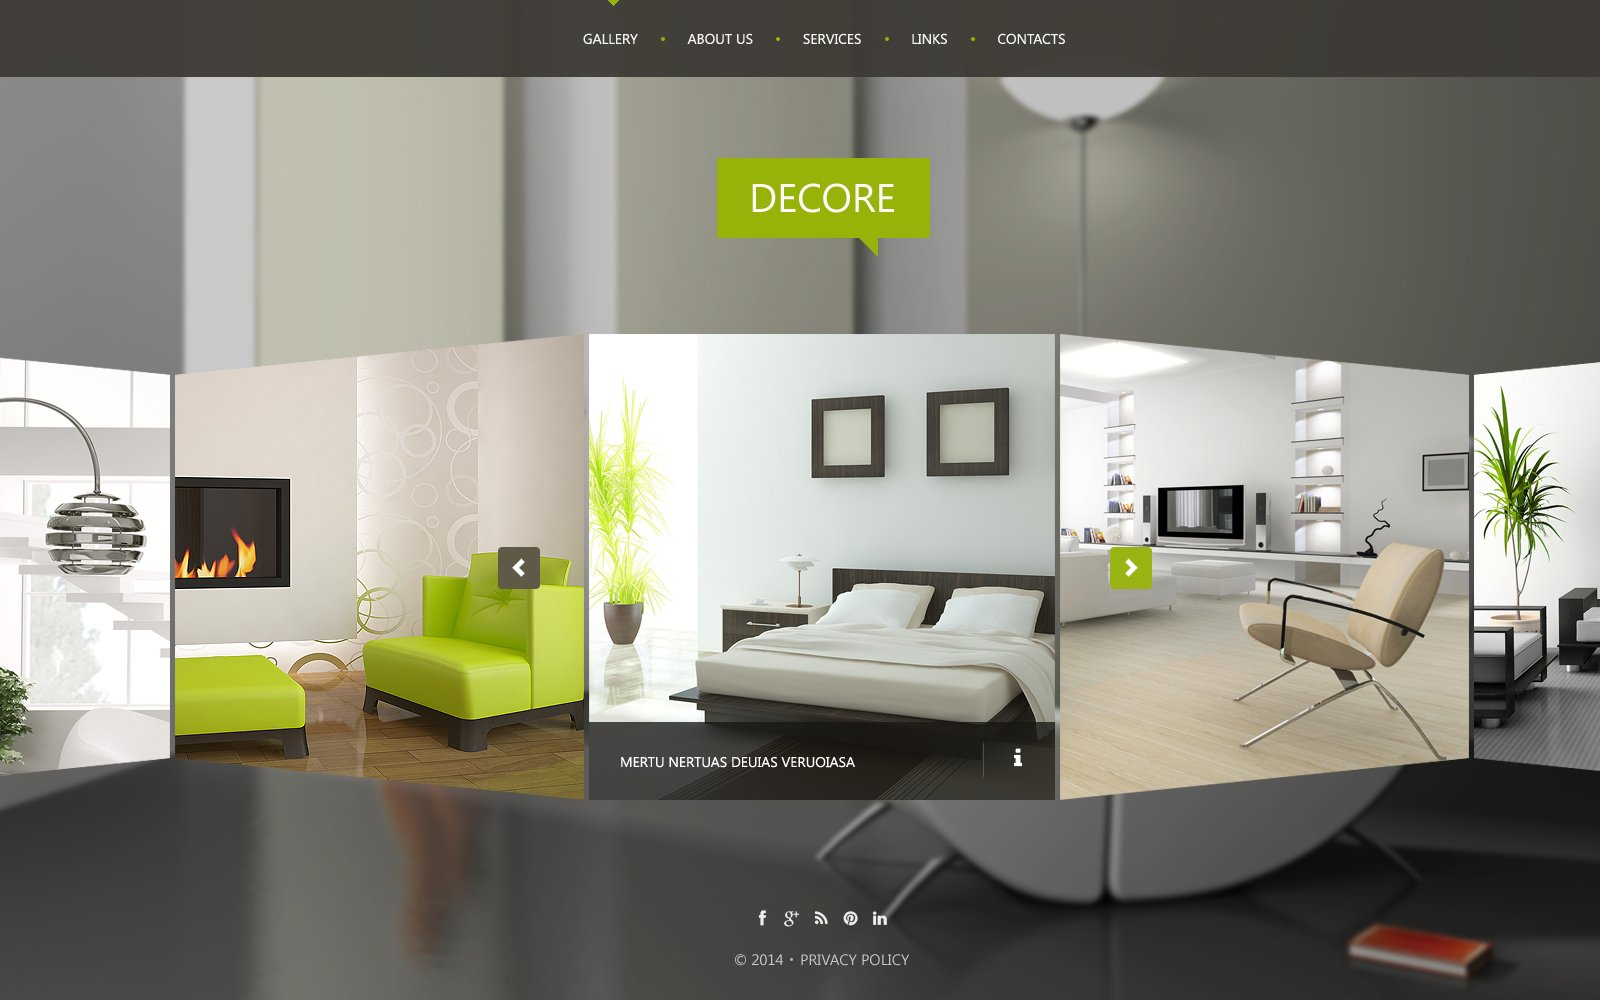 Interior design website template 51116 - Website for home design ...